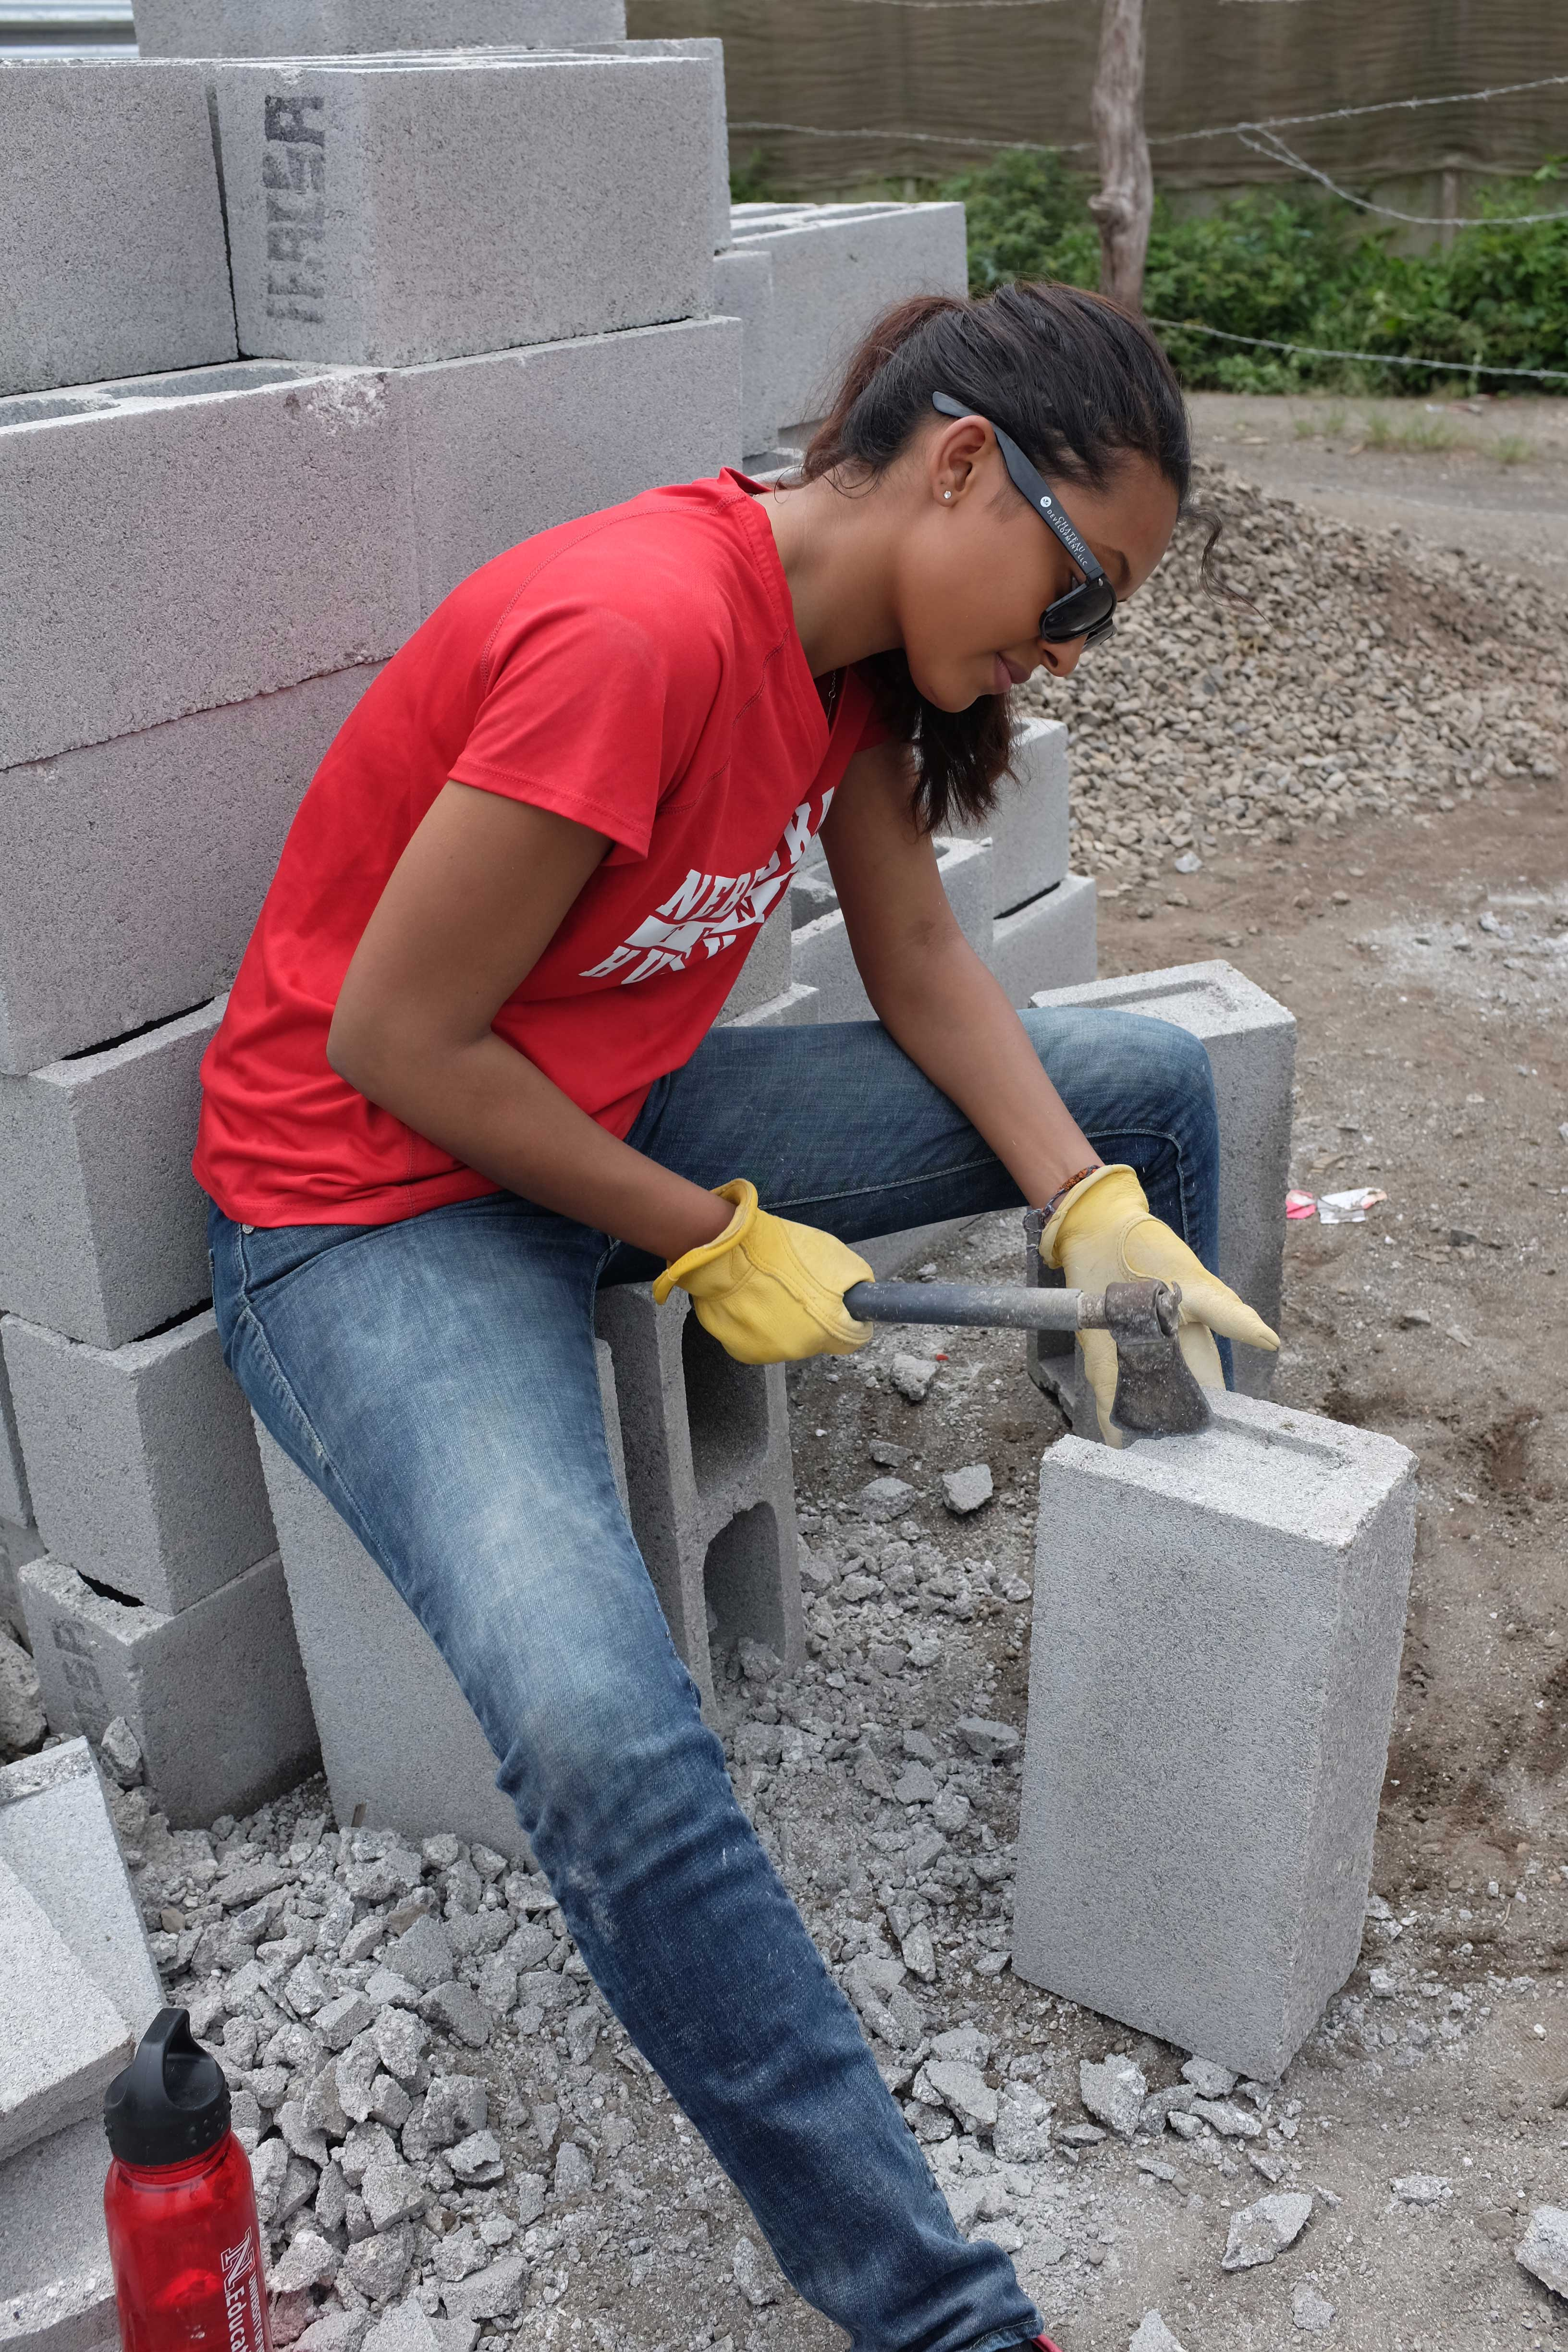 Student chops bricks to build hurricane resistant homes in Guatemala.